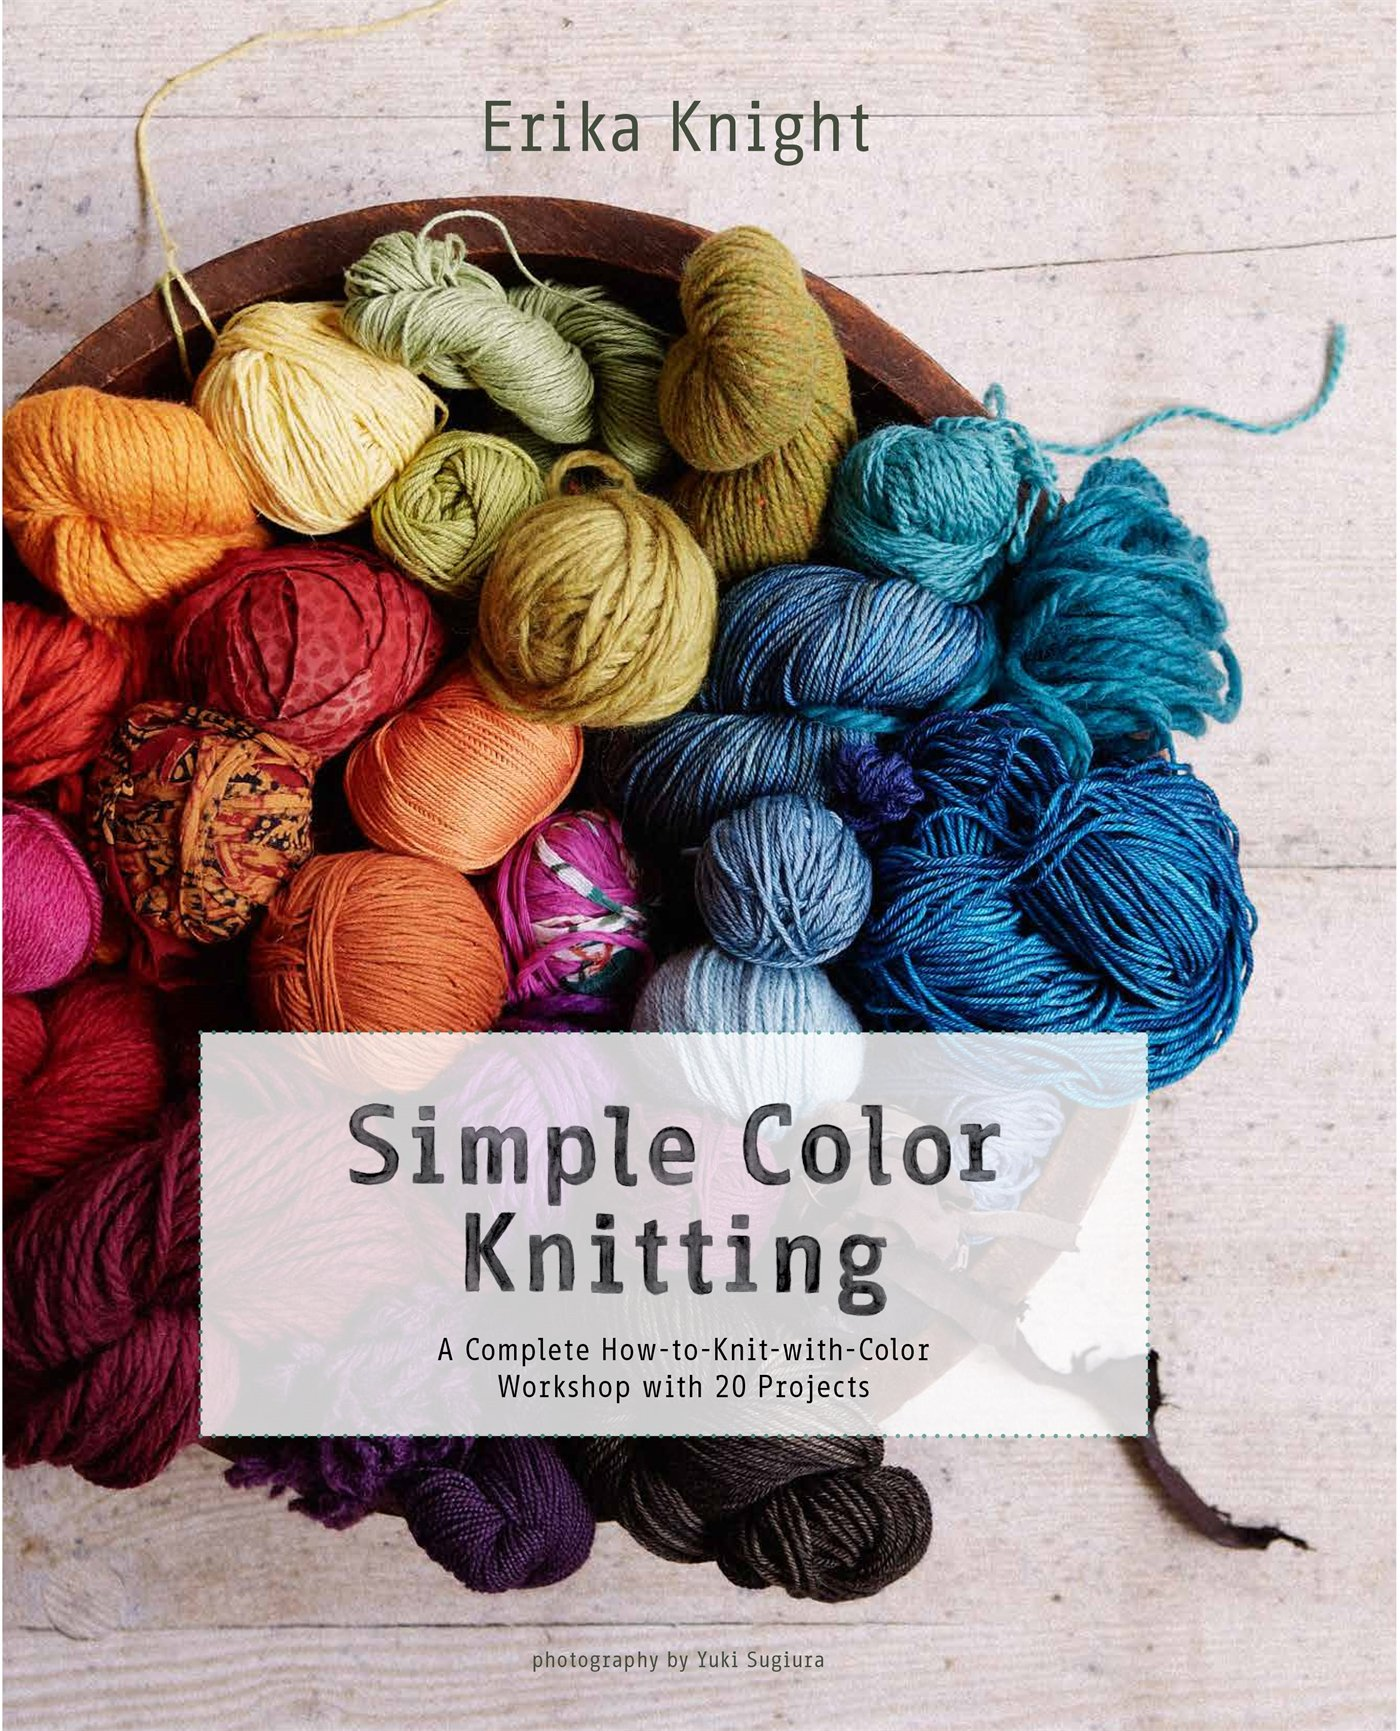 Simple Color Knitting by Erika Knight: Book Review   www.thestitchinmommy.com